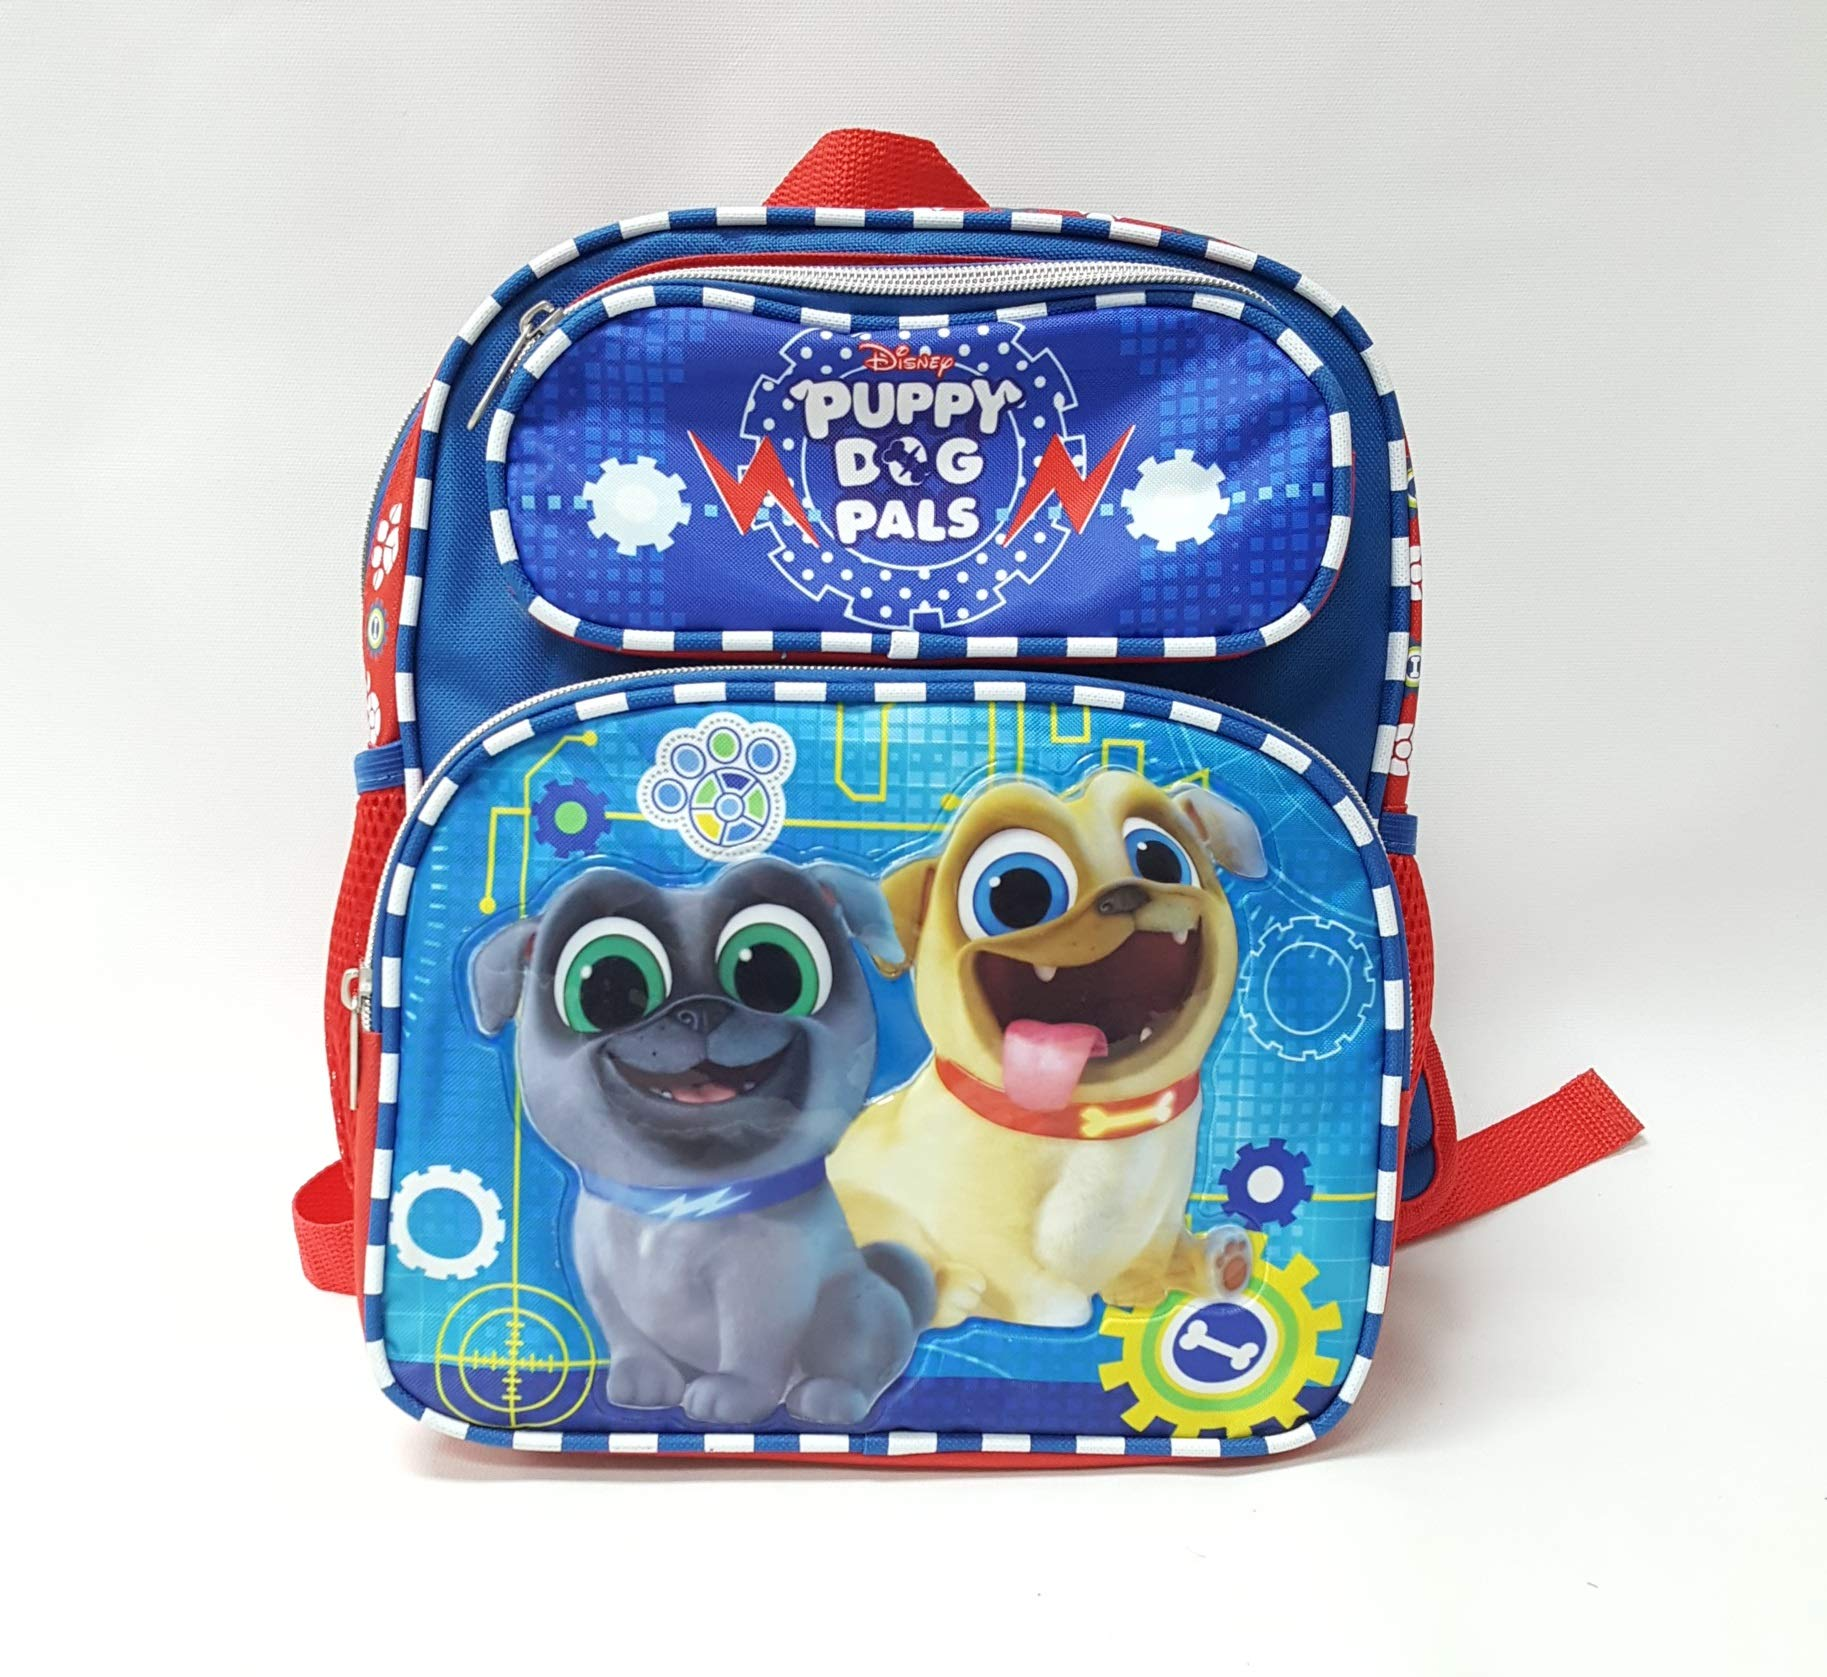 Disney Puppy Dog Pals 12'' Backpack